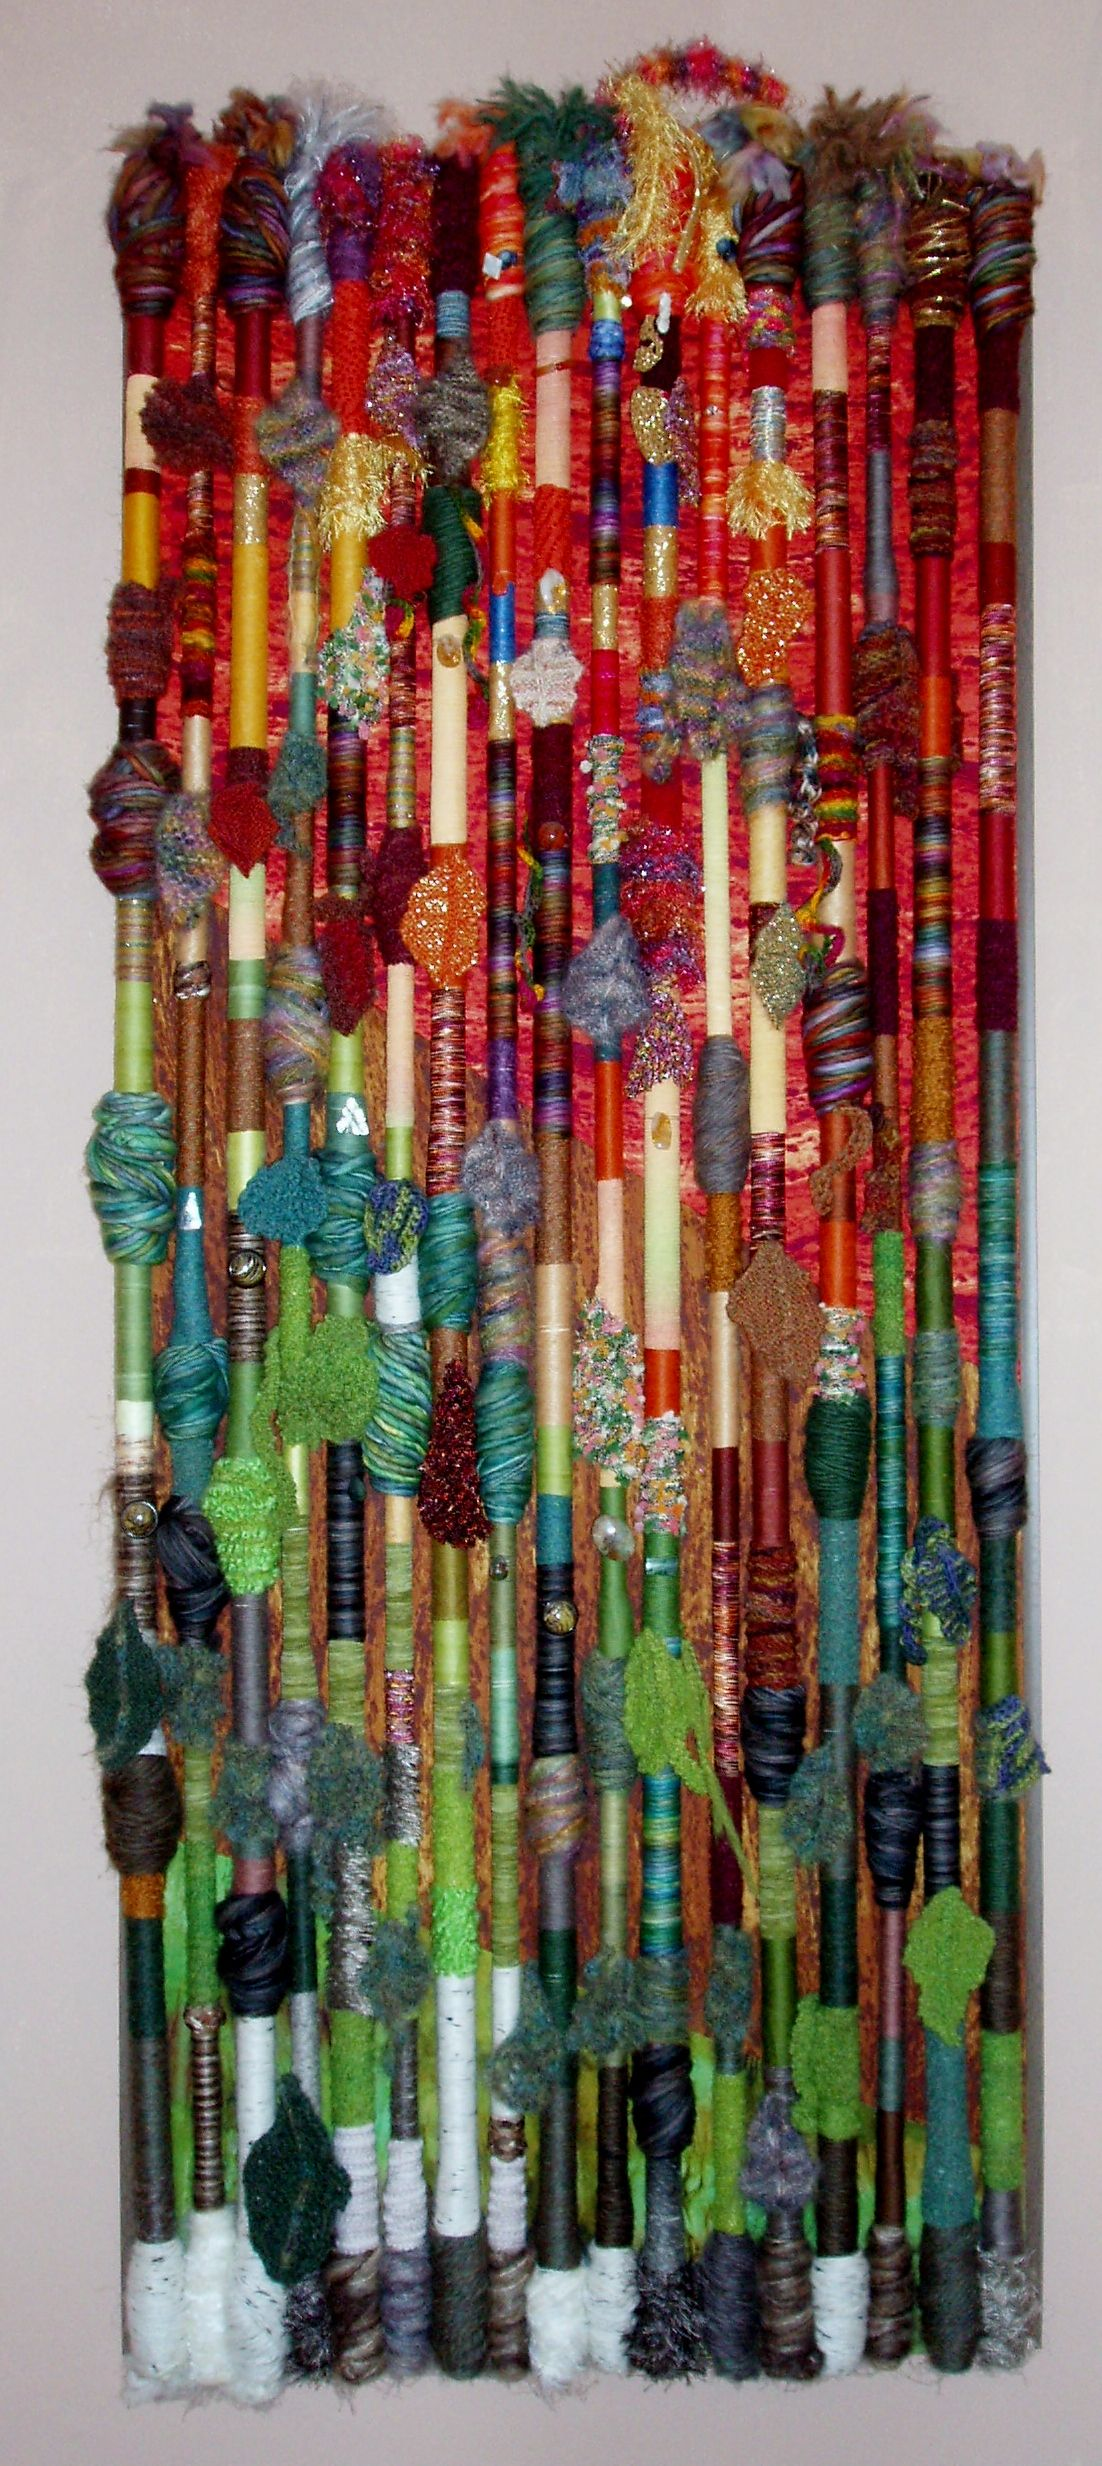 Textile Wall Art fiber art wall hanging - fall in the northland. madepolly